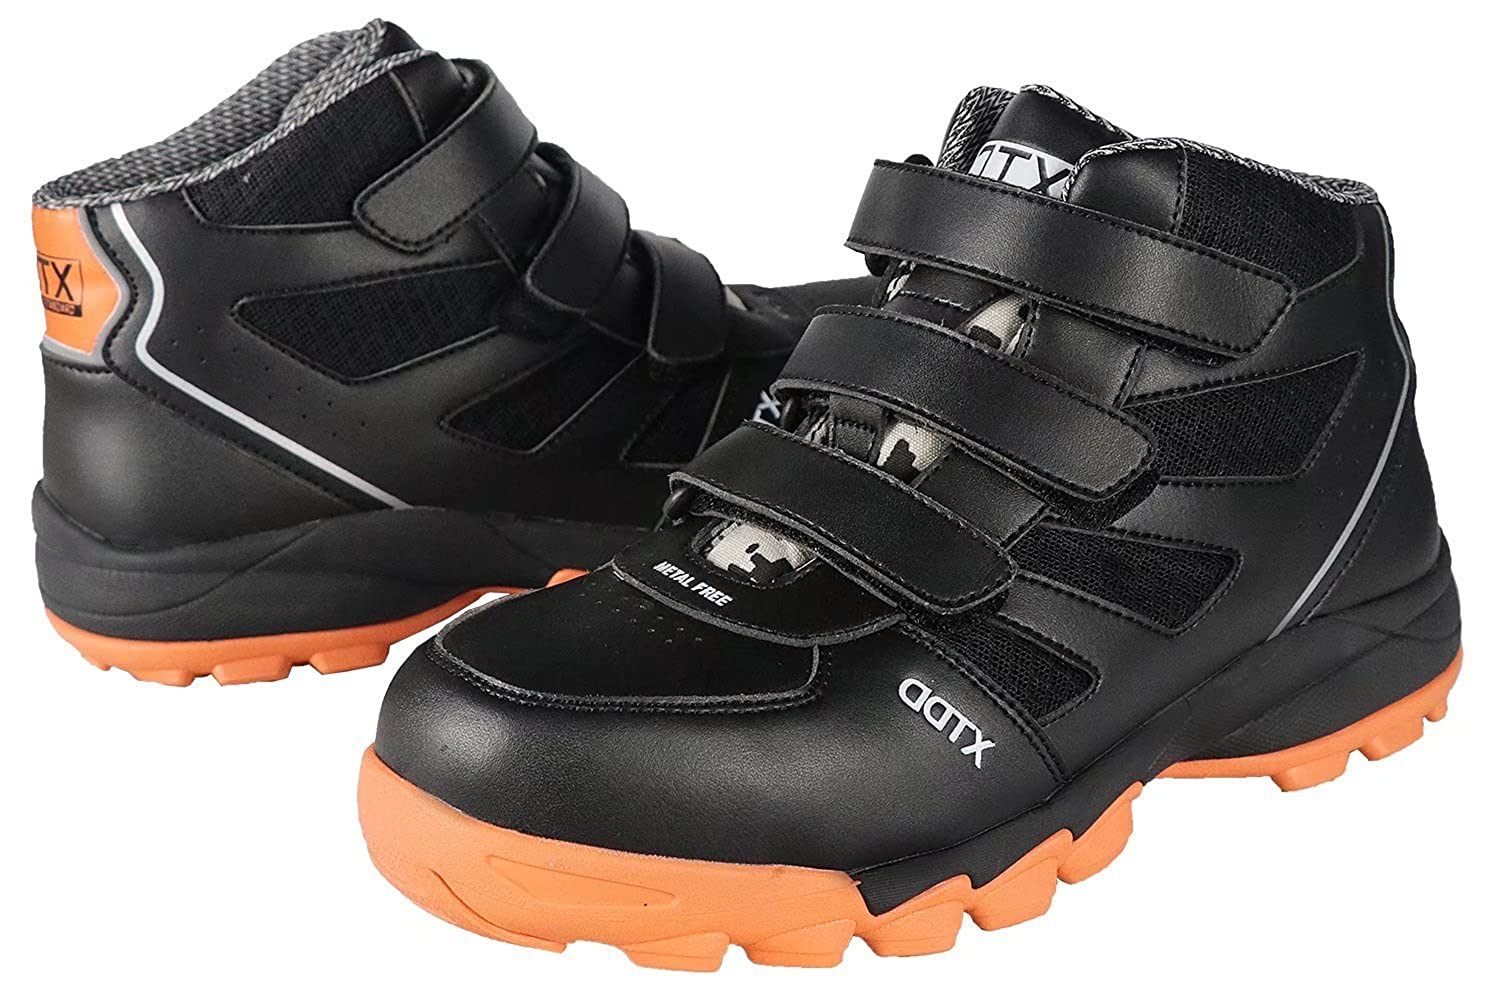 3a00c2aa08d88 DDTX Metal Free Cap Smash Proof Anti-Puncture EH Protection Work Boots for  Men Black